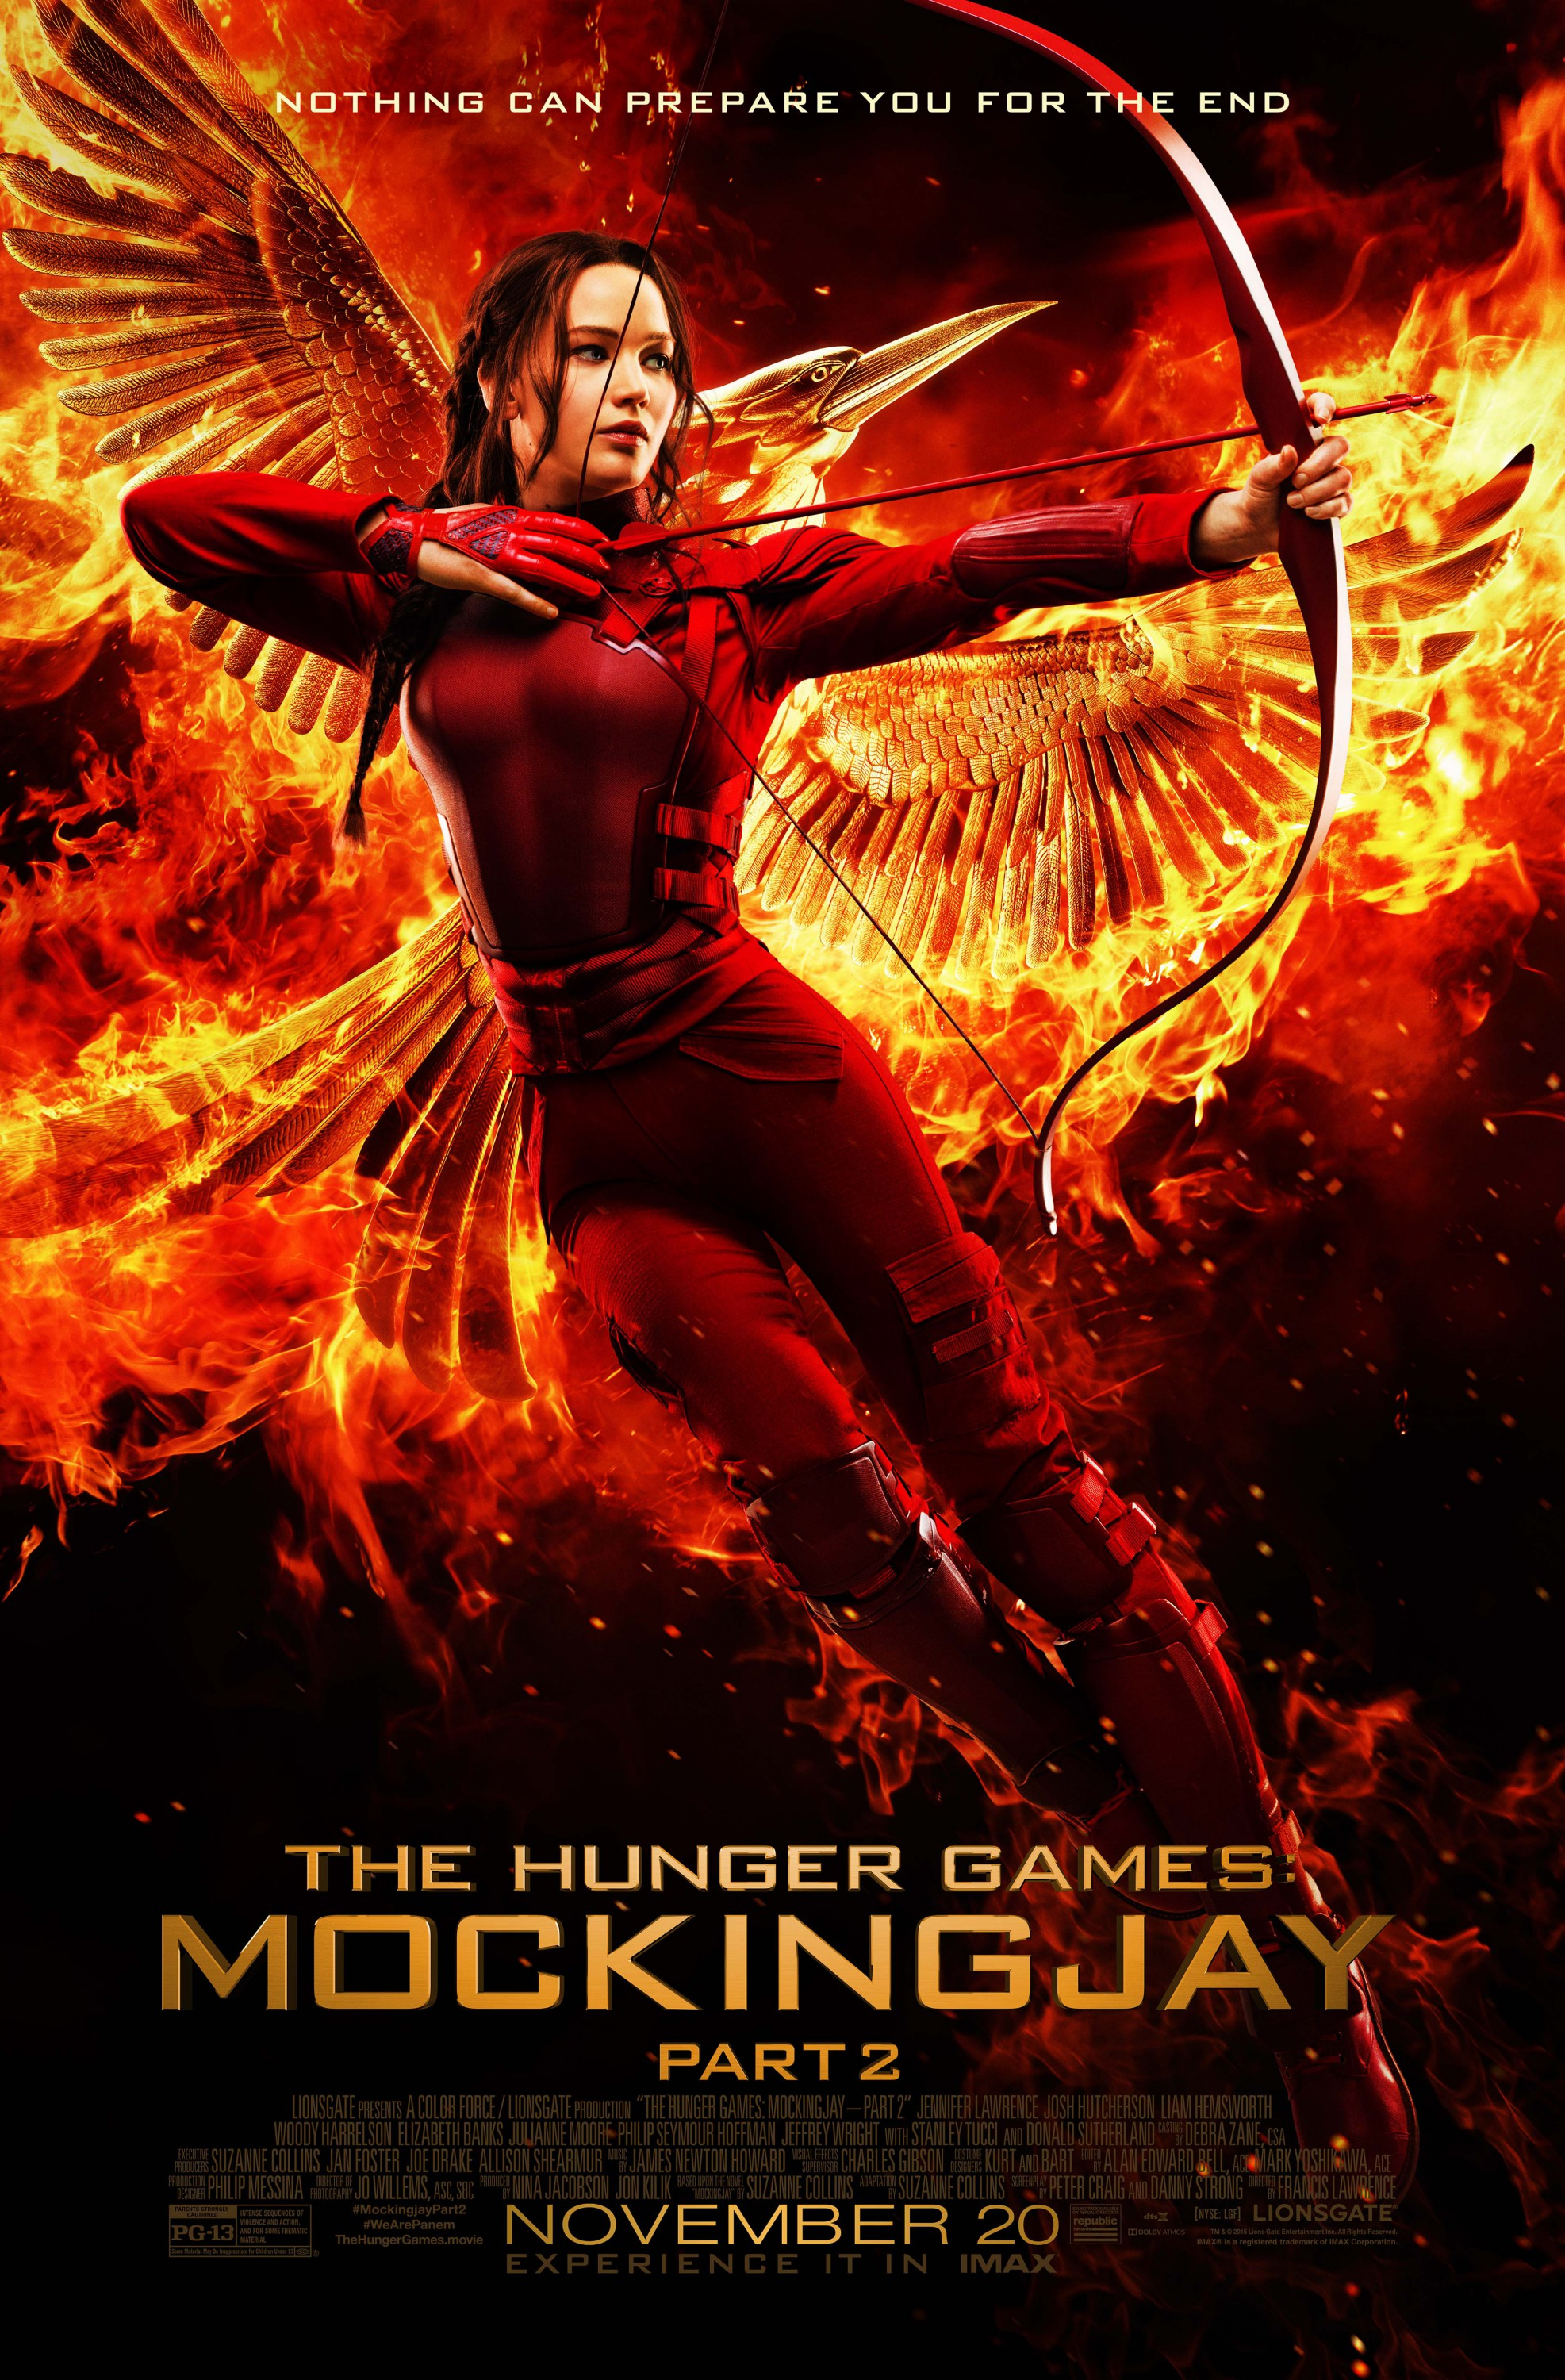 The Hunger Games: Mockingjay - Part 2 | The Hunger Games ...